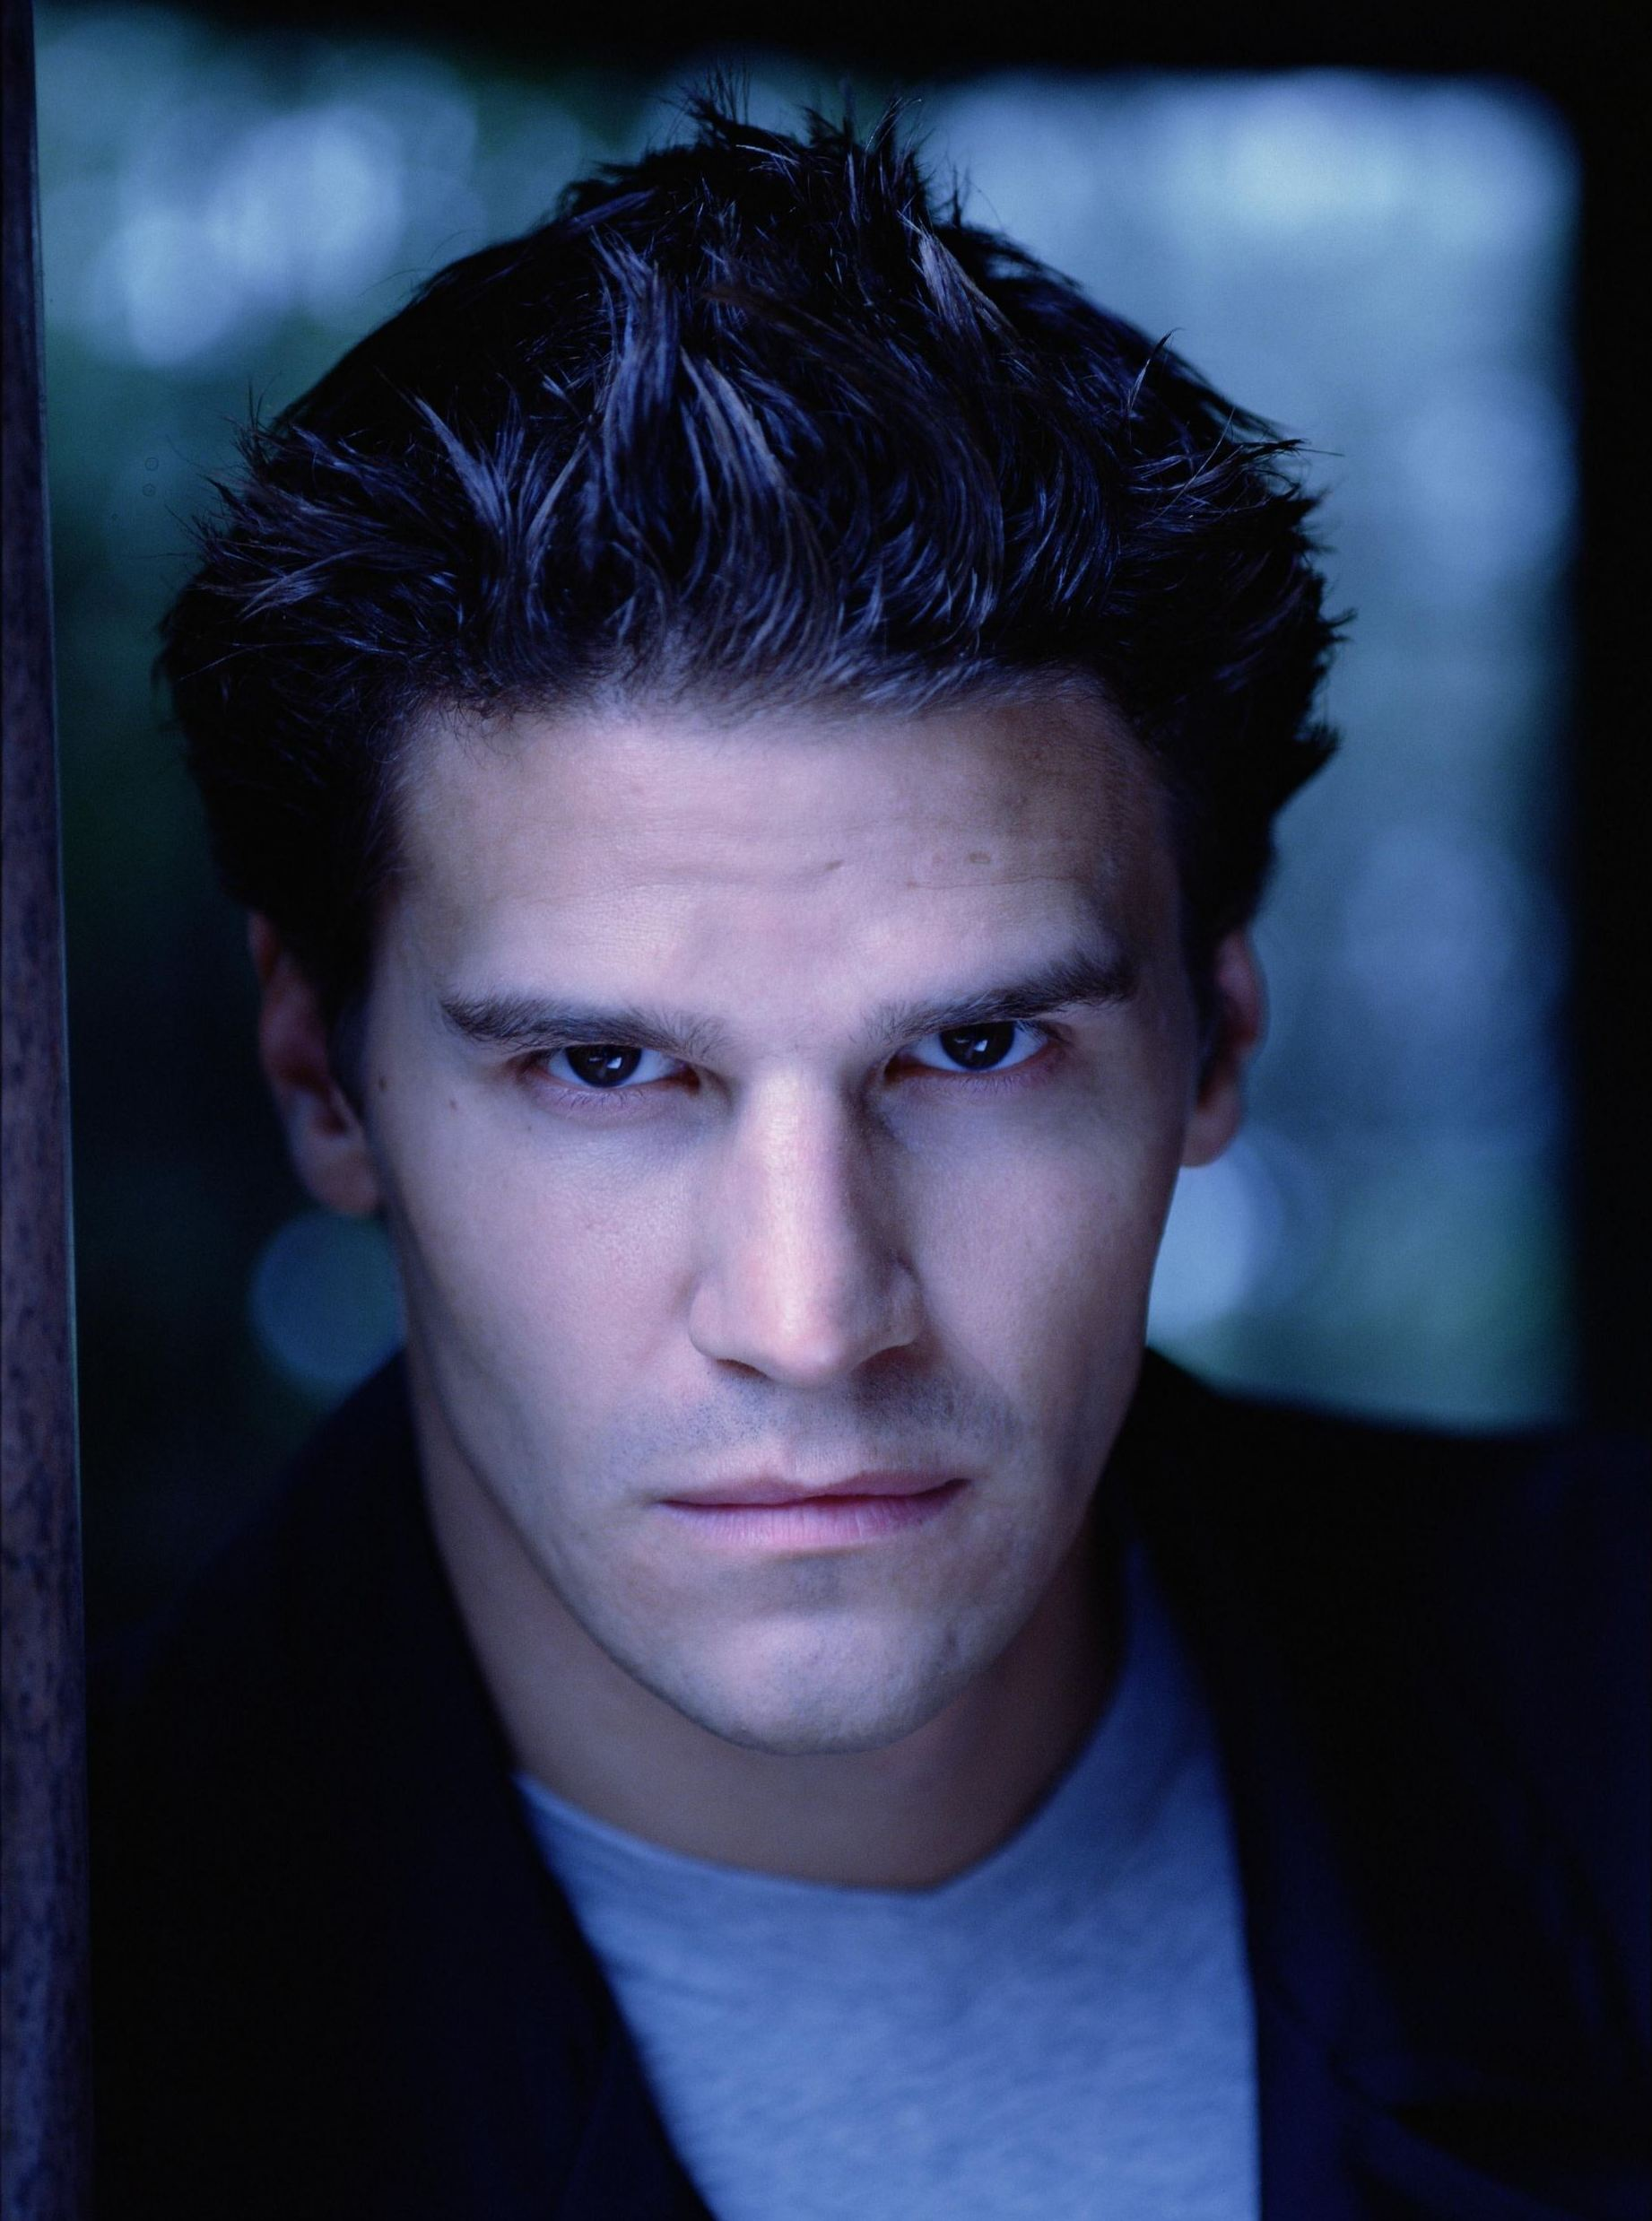 david boreanaz angel season 1 - photo #23